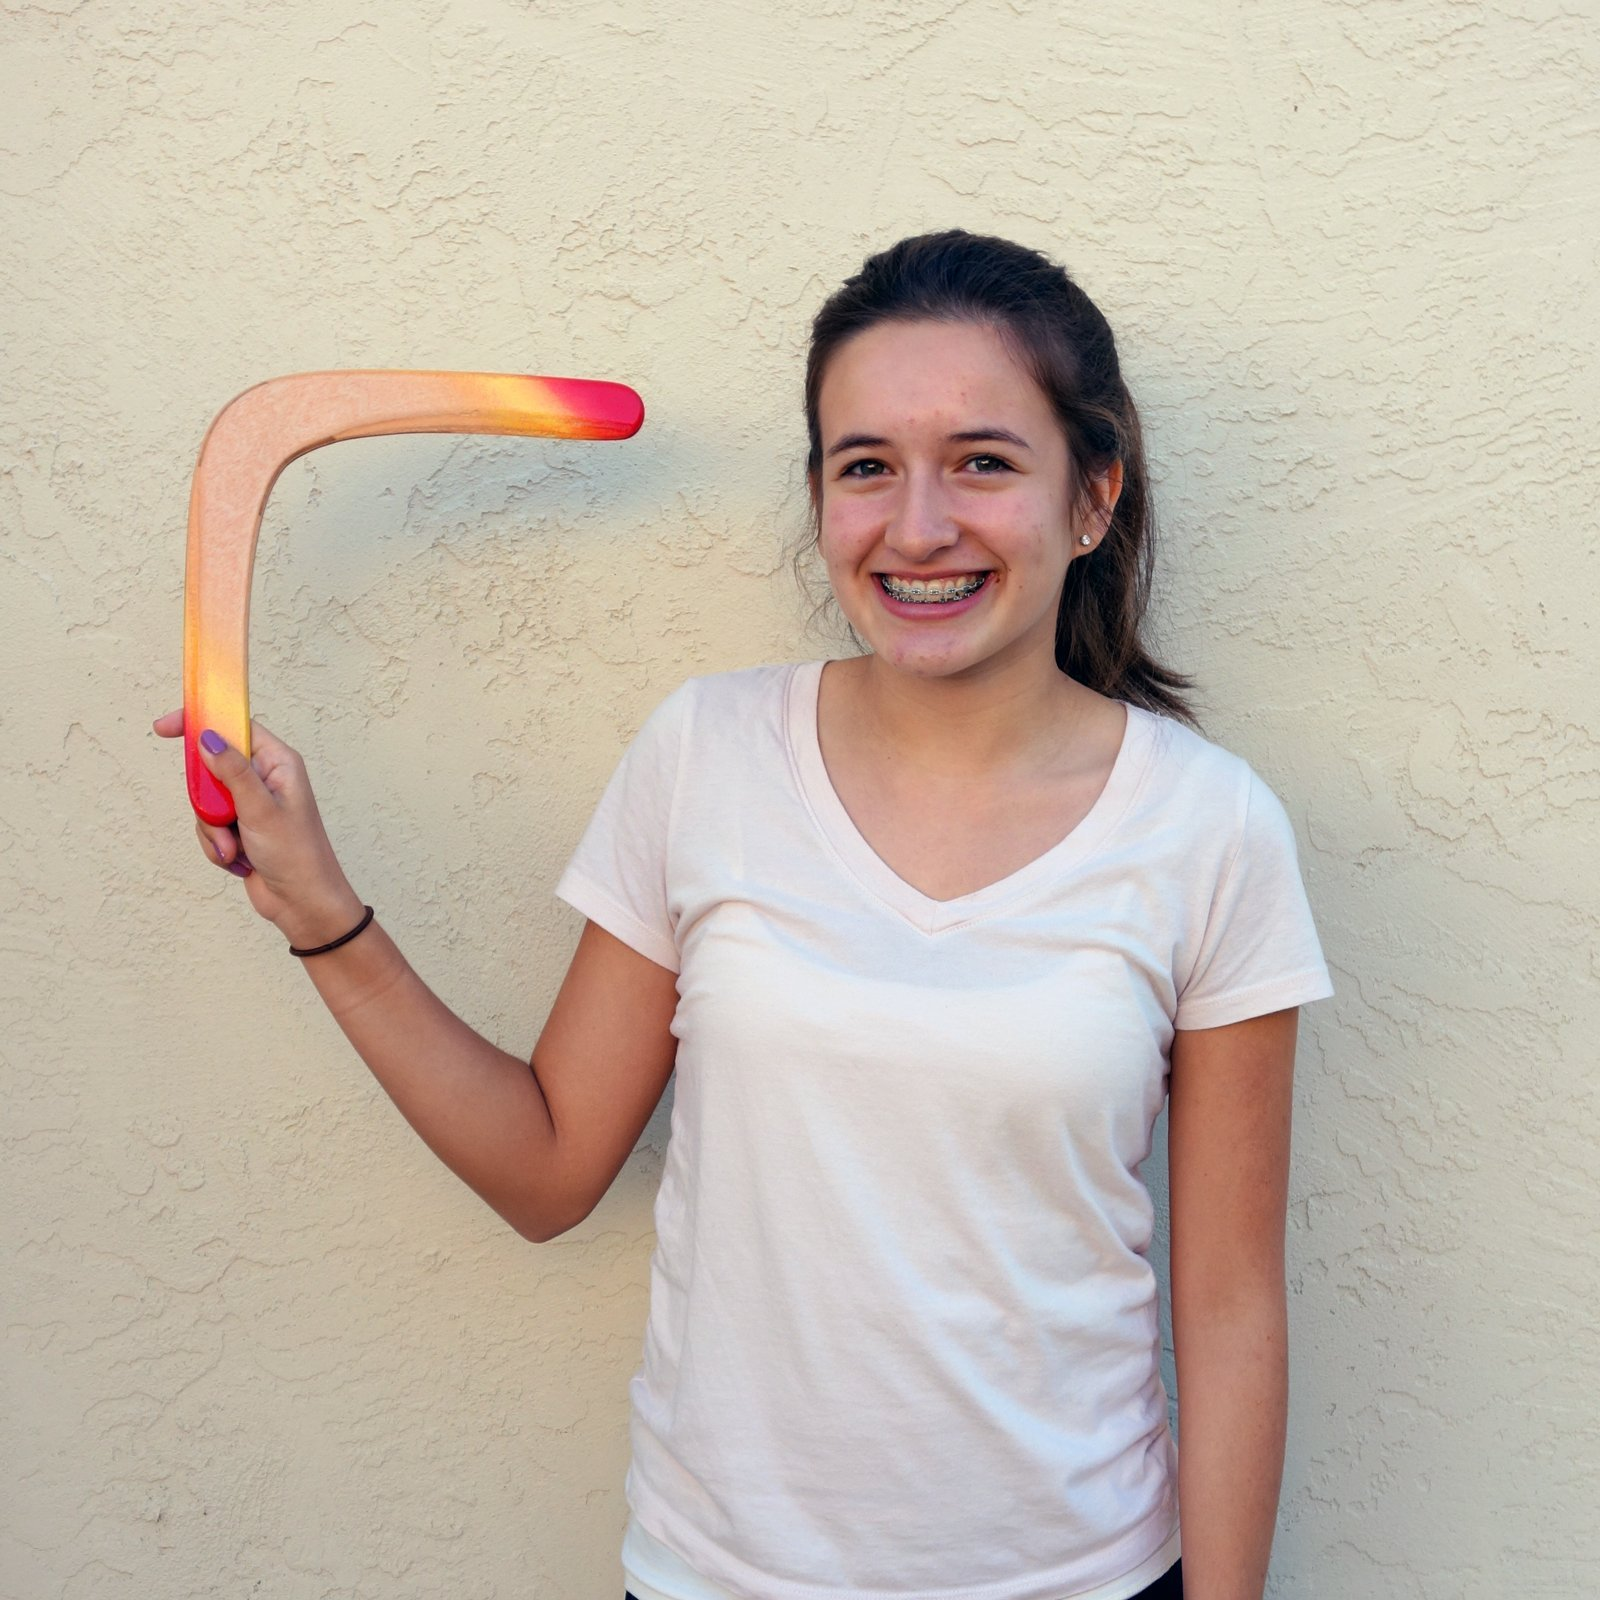 Glacier Wooden Boomerang - For Kids 8-18! Great Returning Boomerangs from Colorado Boomerangs! by Colorado Boomerangs